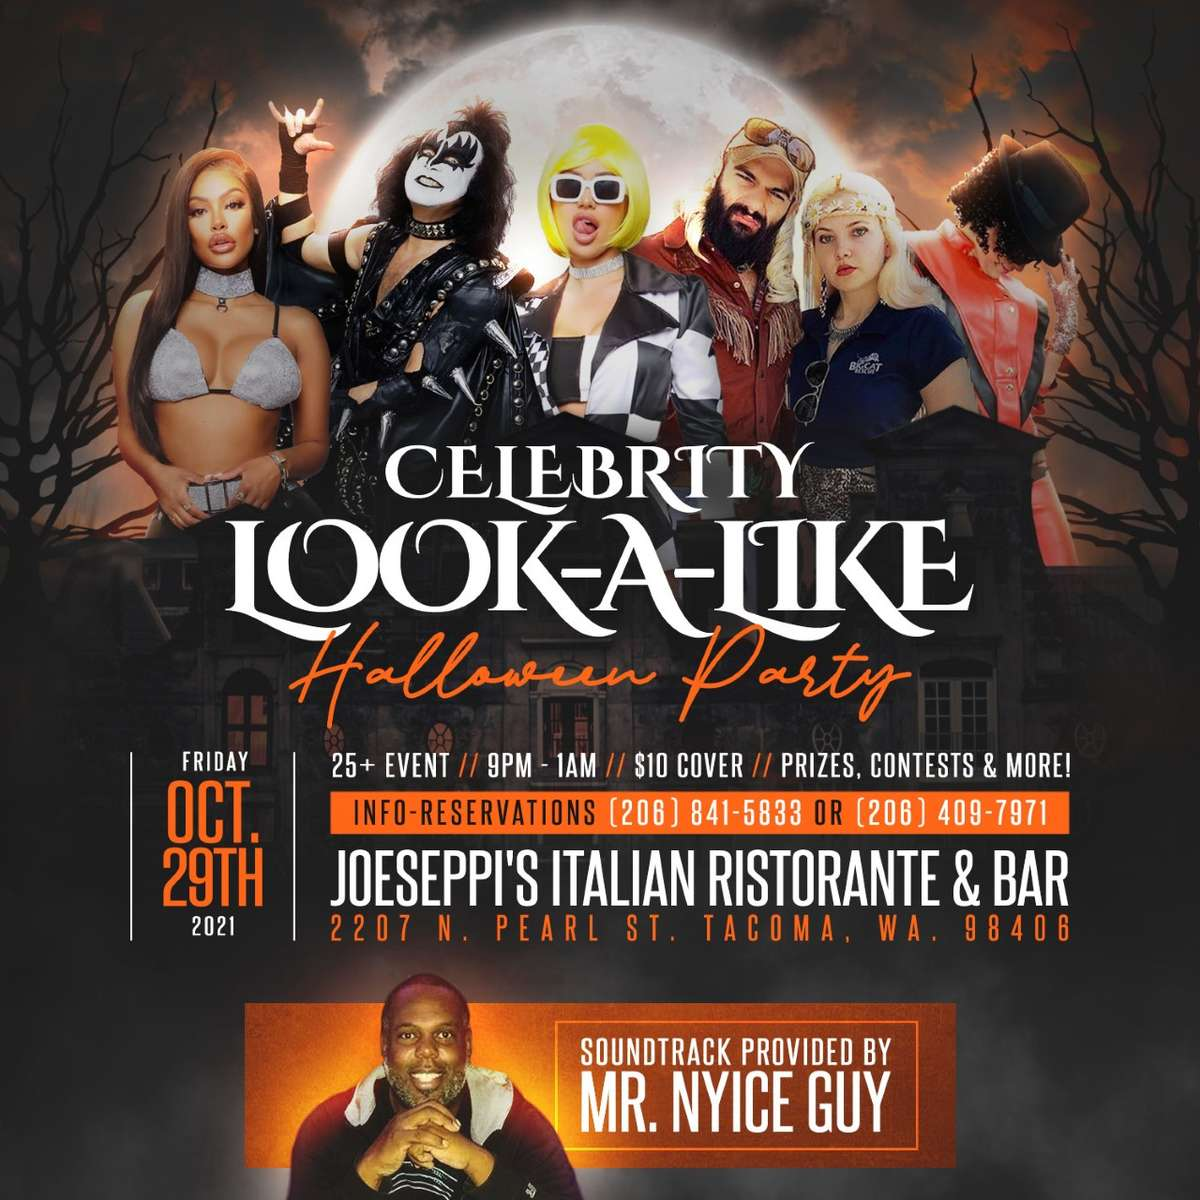 Celebrity Look-a-Like Halloween Party live at Piacere, the Lounge at Joeseppi's Italian Ristorante in Tacoma, WA